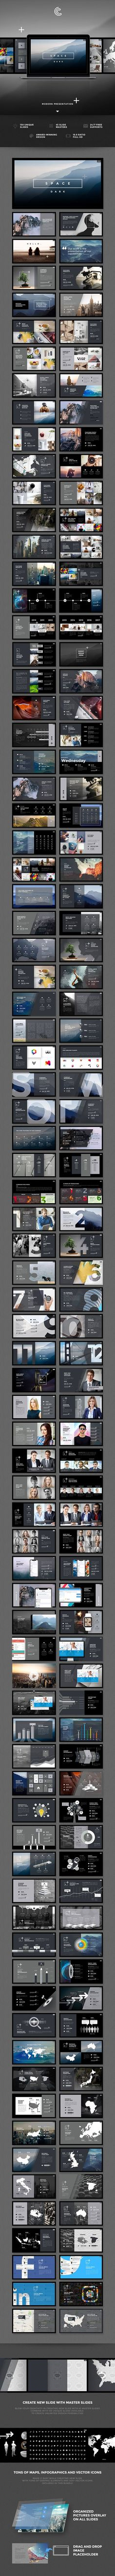 Space Dark PowerPoint — Powerpoint PPTX #continuity #beautiful • Available here ➝ https://graphicriver.net/item/space-dark-powerpoint/21004003?ref=pxcr